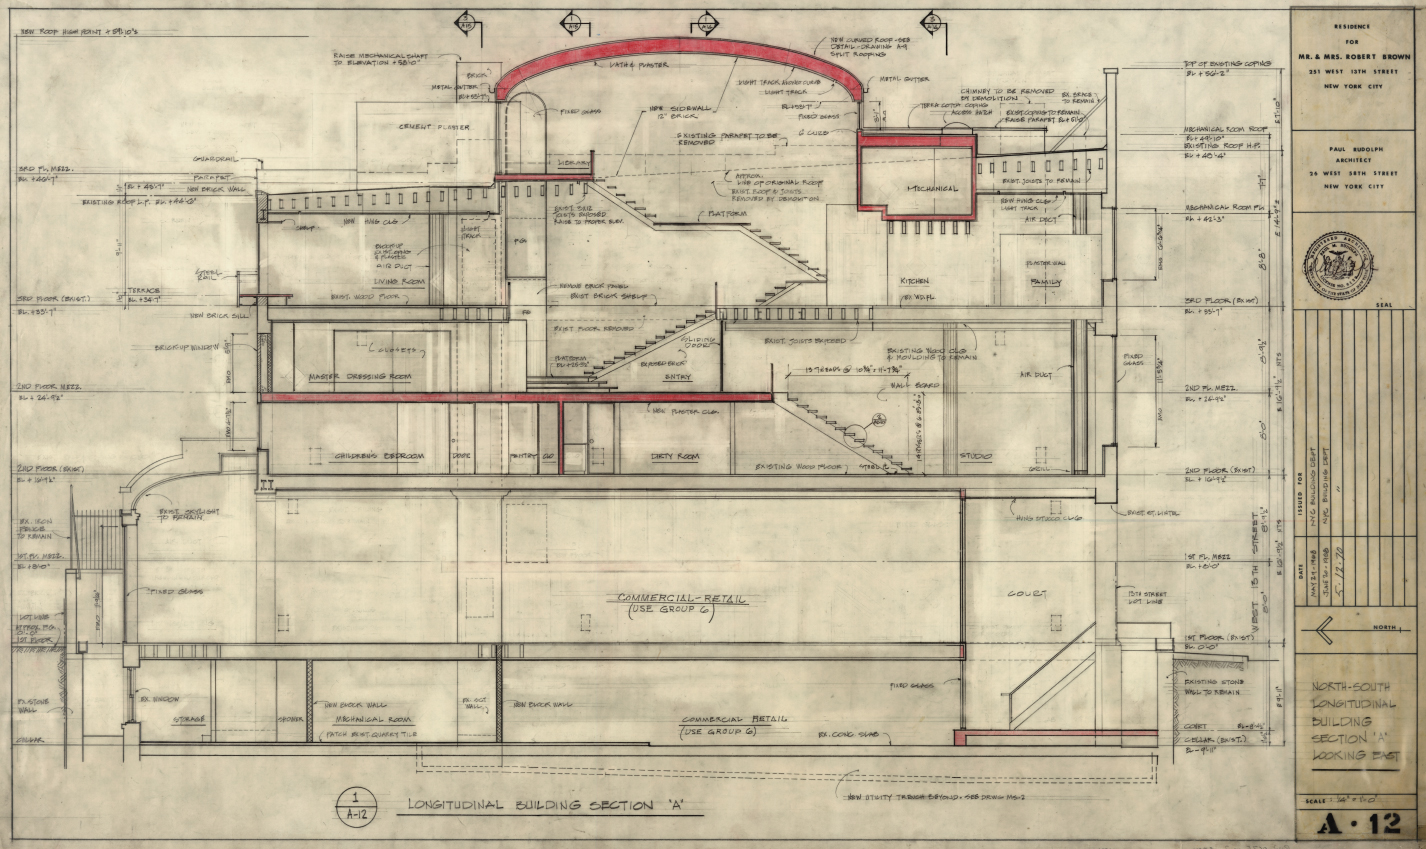 Robert Brown residence, New York City. North-South Longitudinal Building Section 'A' Looking East, Sheet A-12.